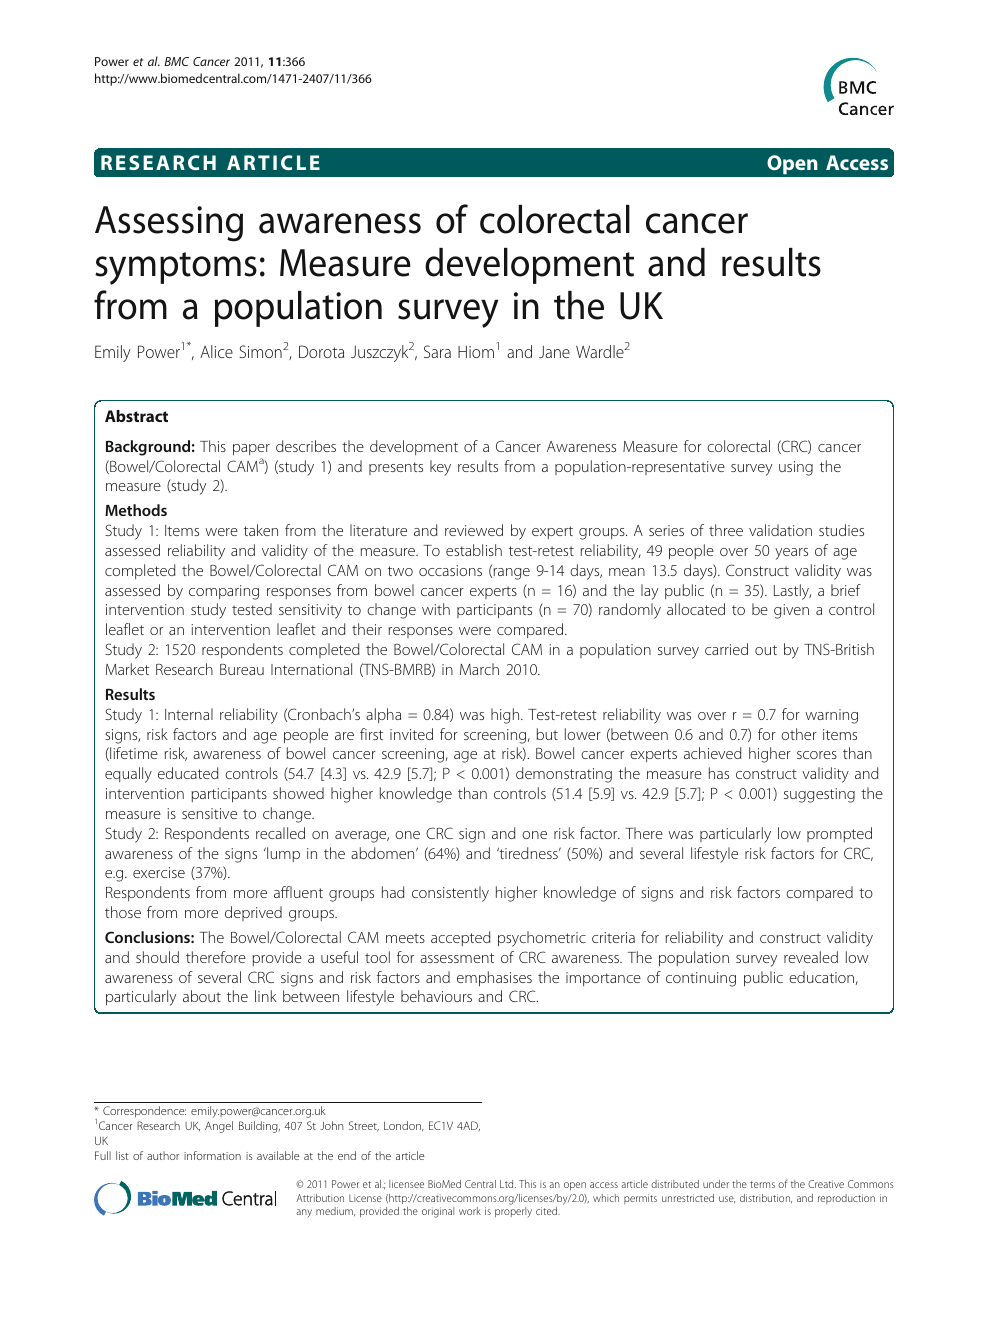 Assessing awareness of colorectal cancer symptoms: Measure